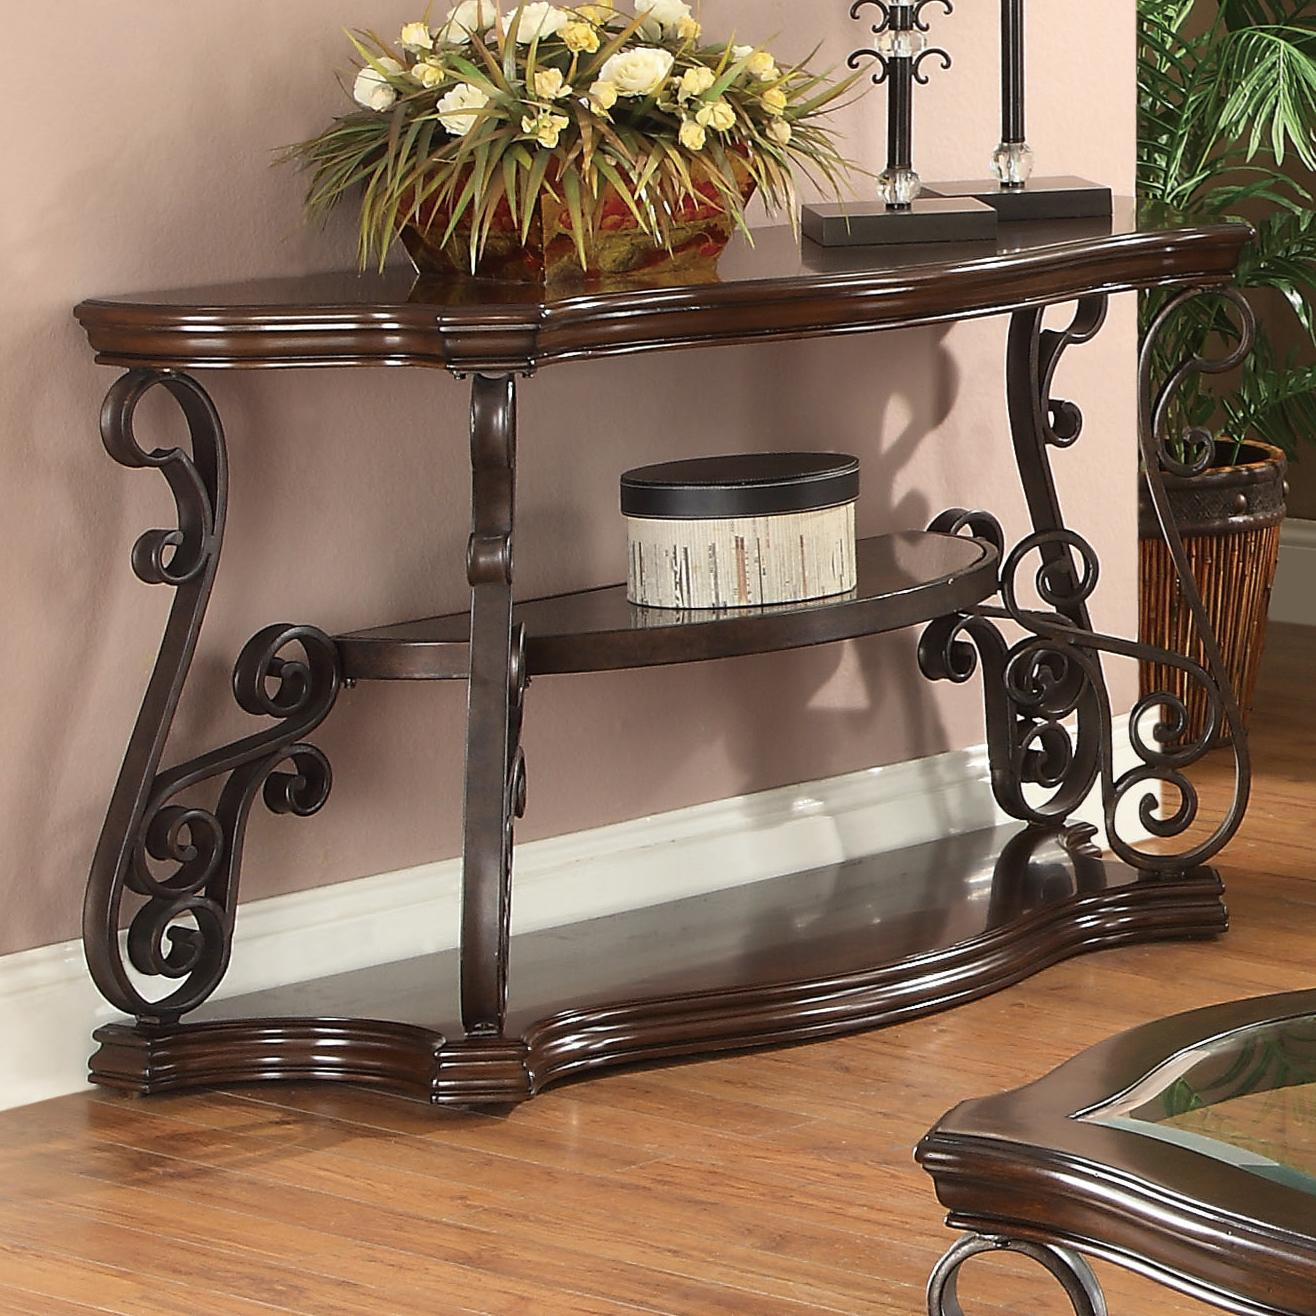 Dark Brown Sofa Table - Shop for Affordable Home Furniture, Decor ...